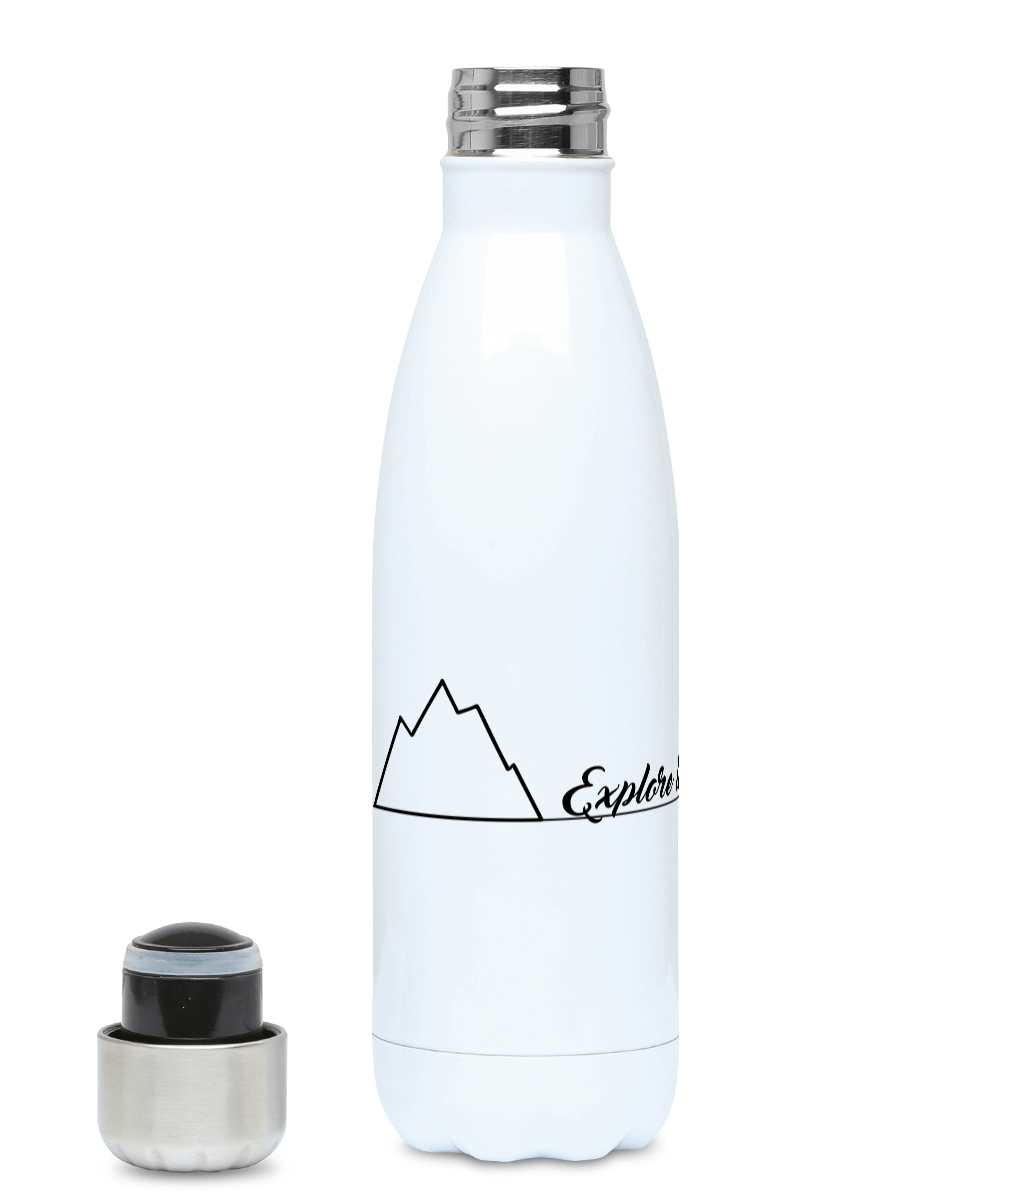 Explore Land and Sea - Plastic Free 500ml Water Bottle, Suggested Products, Pen and Ink Studios Adventure Clothing